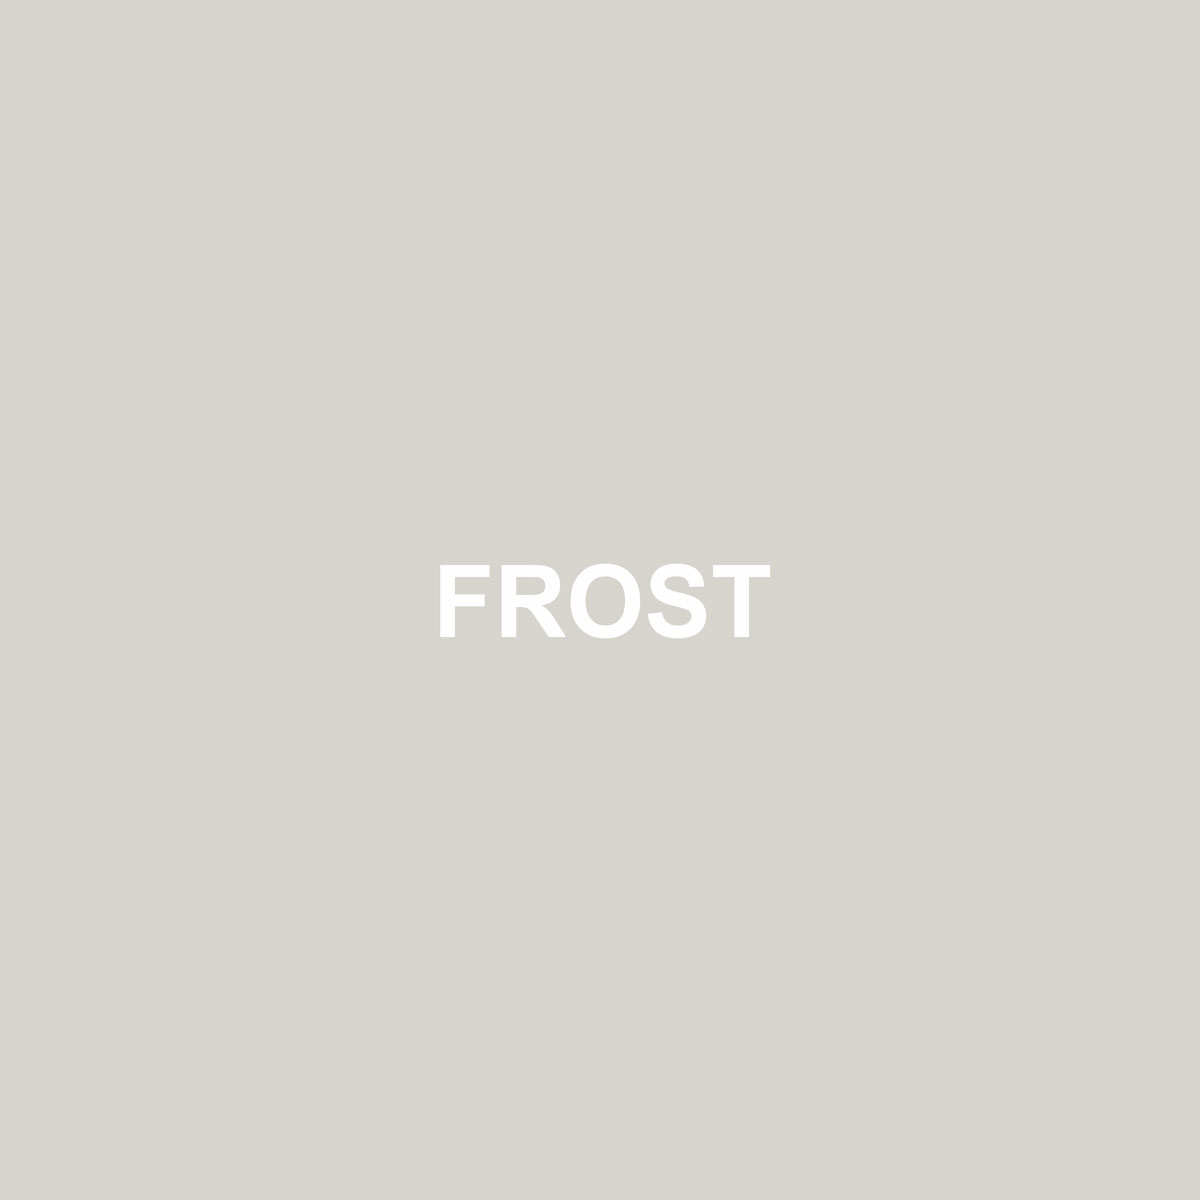 FROST_#ATHLETICUNION.jpg